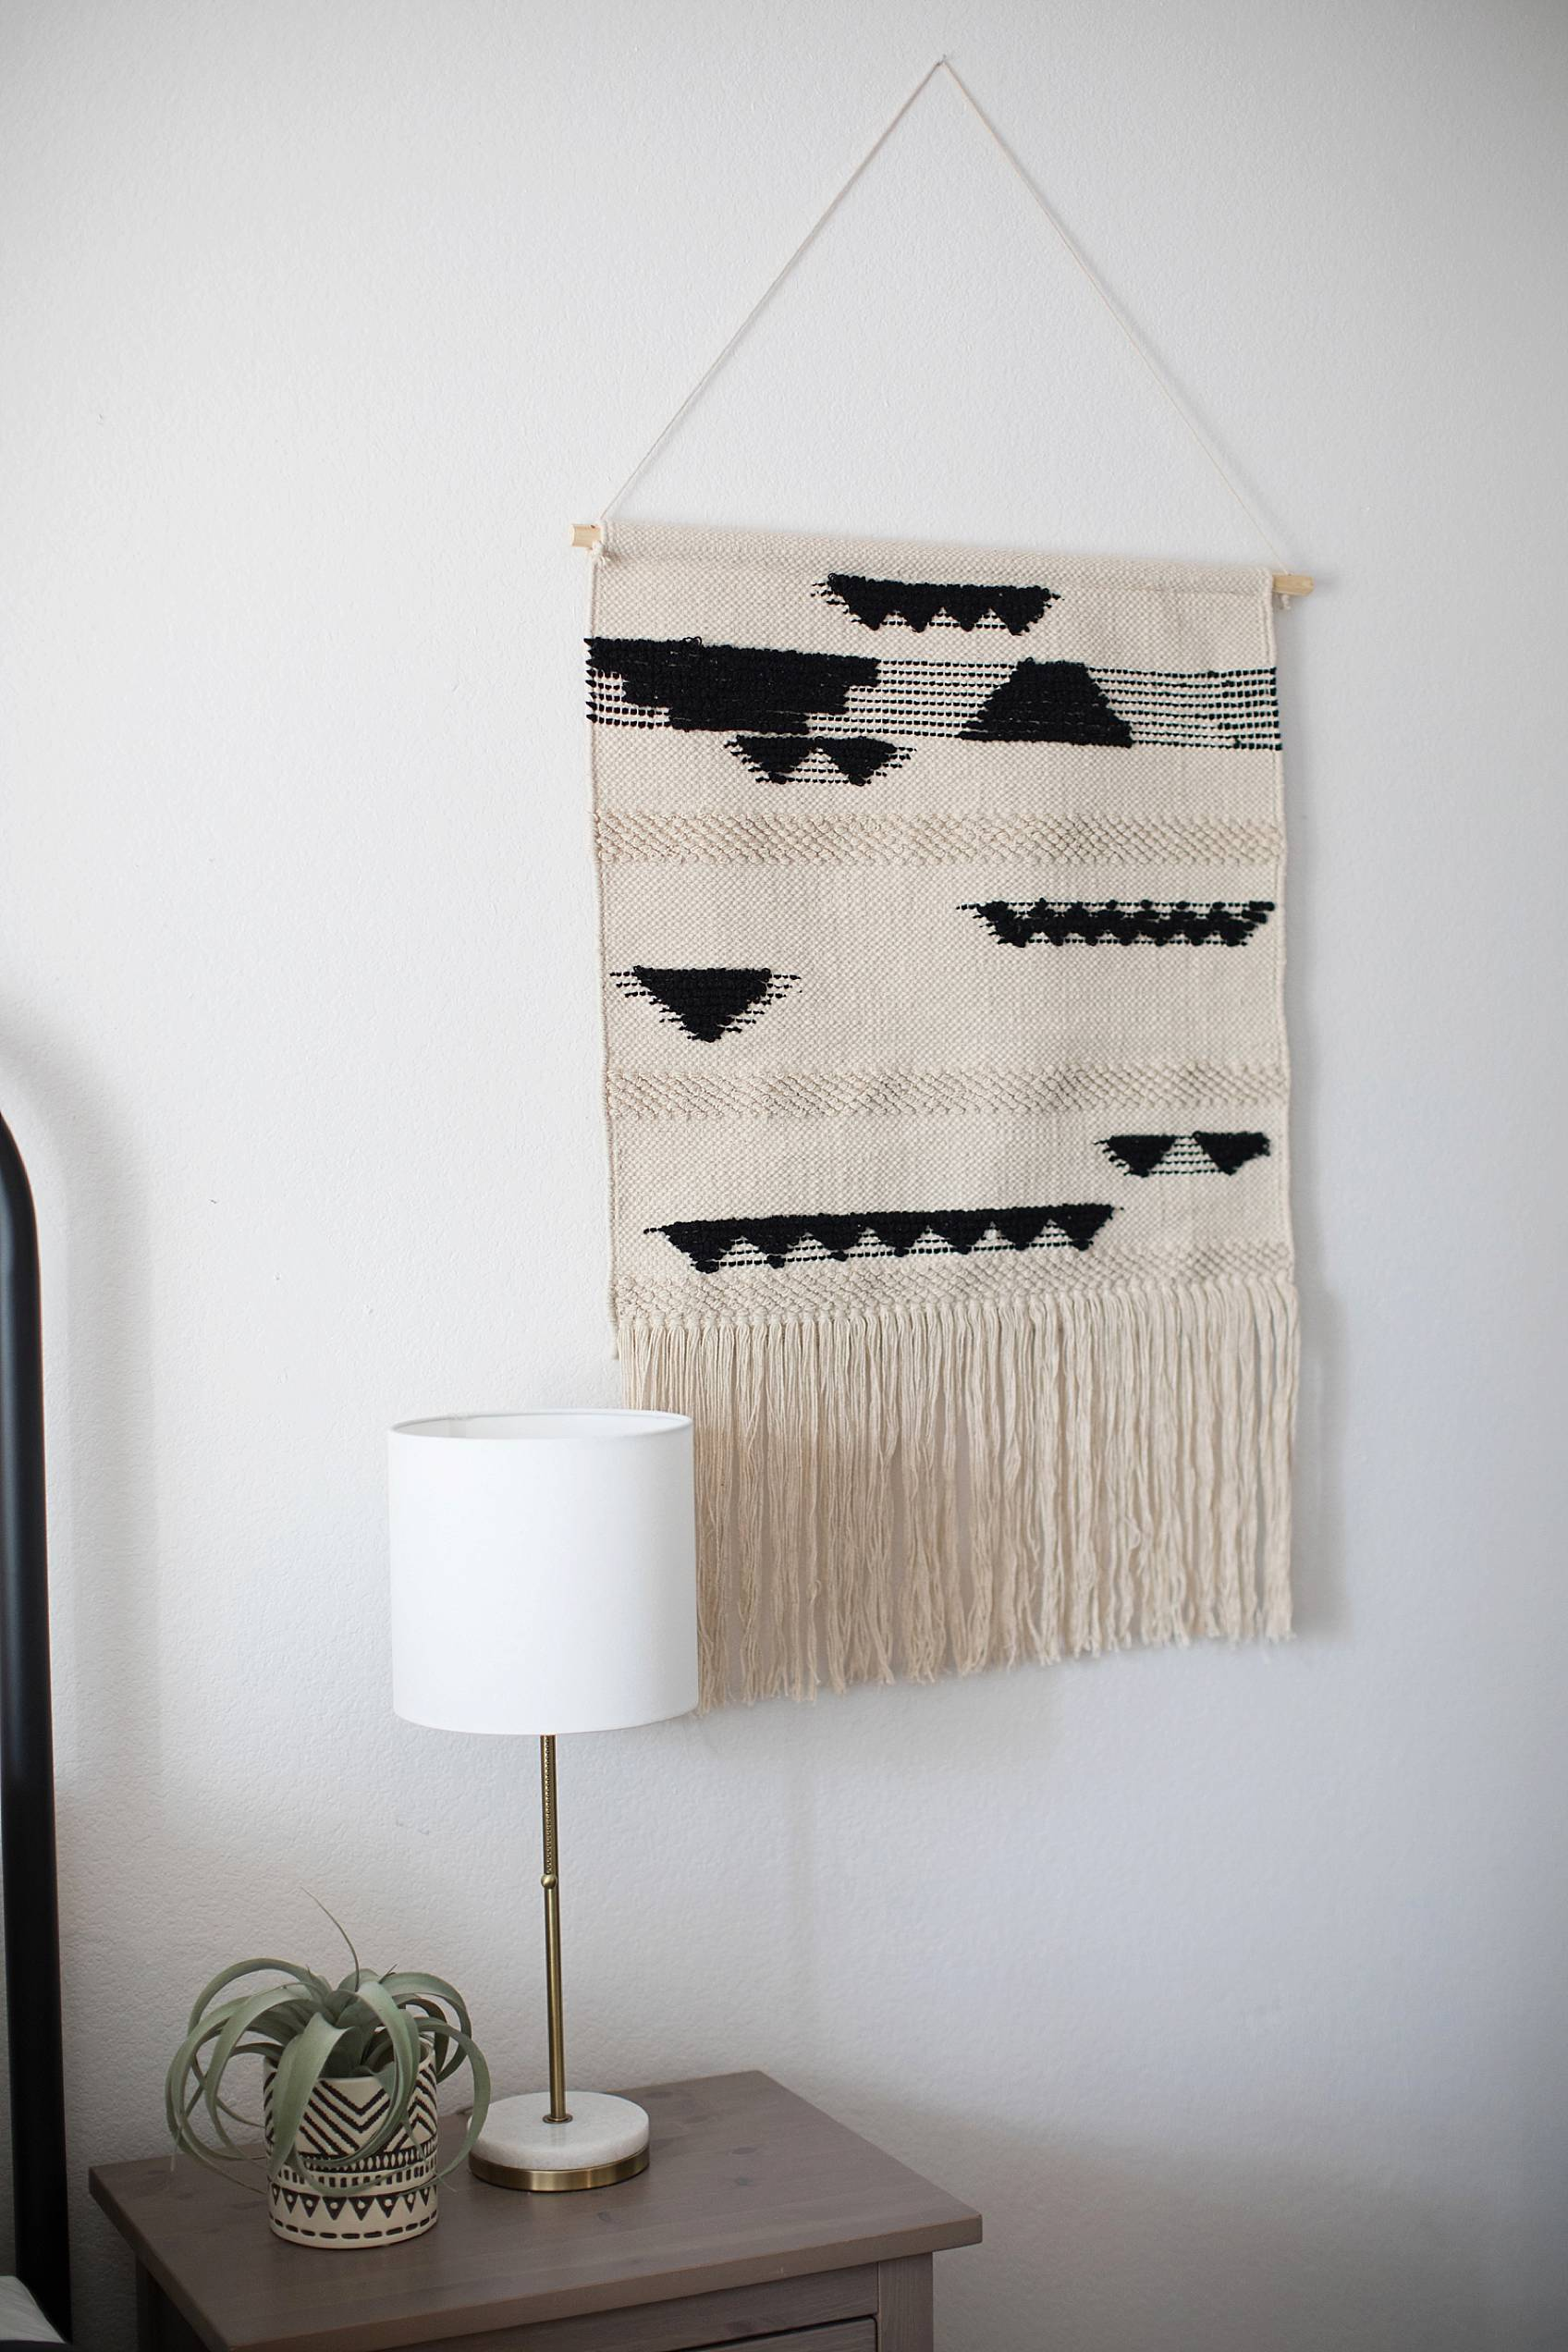 textured wall hanging for boho look